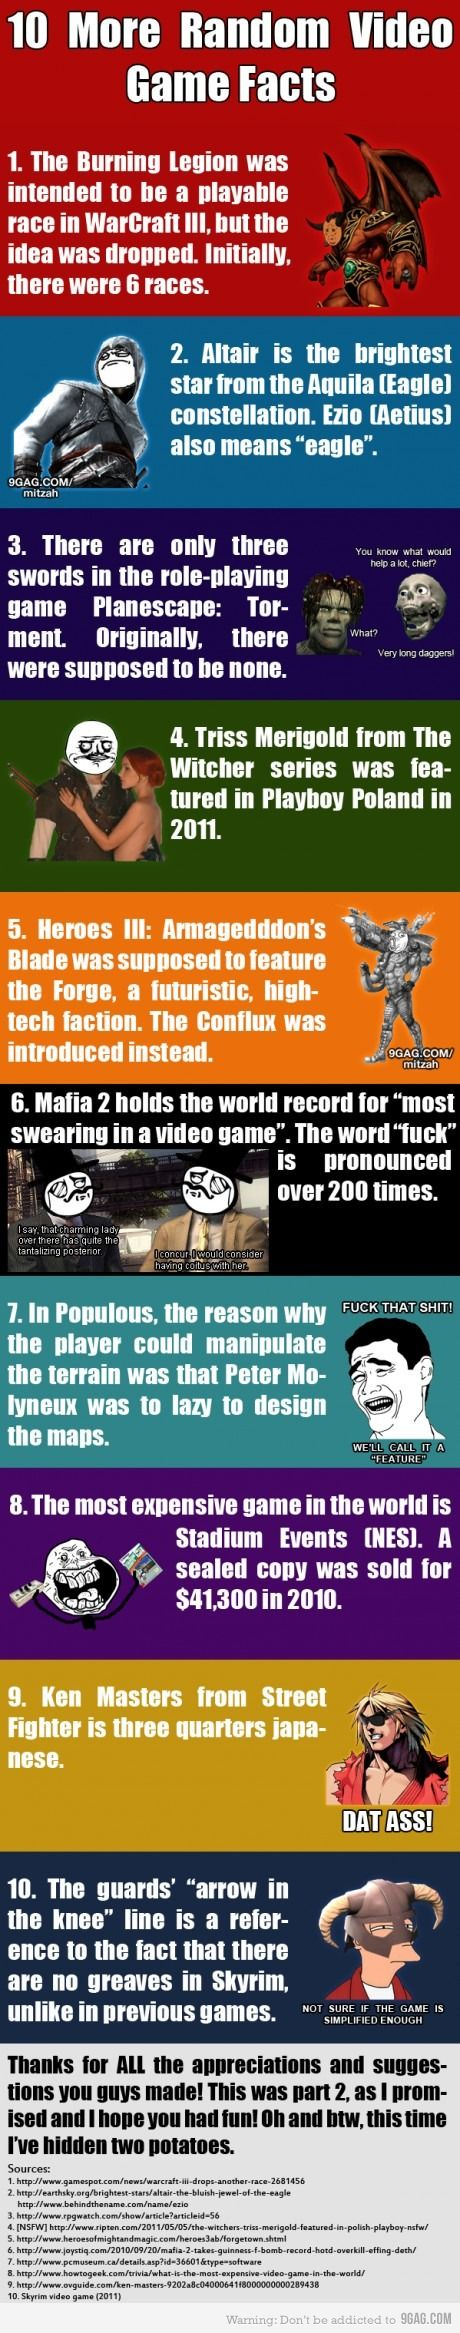 10 More Random Video Games Facts  Book your Video Game Party Package Today! Chicagoland and Northwest Indiana visit: www.RollingVideoGamesChicago.com   #chicago